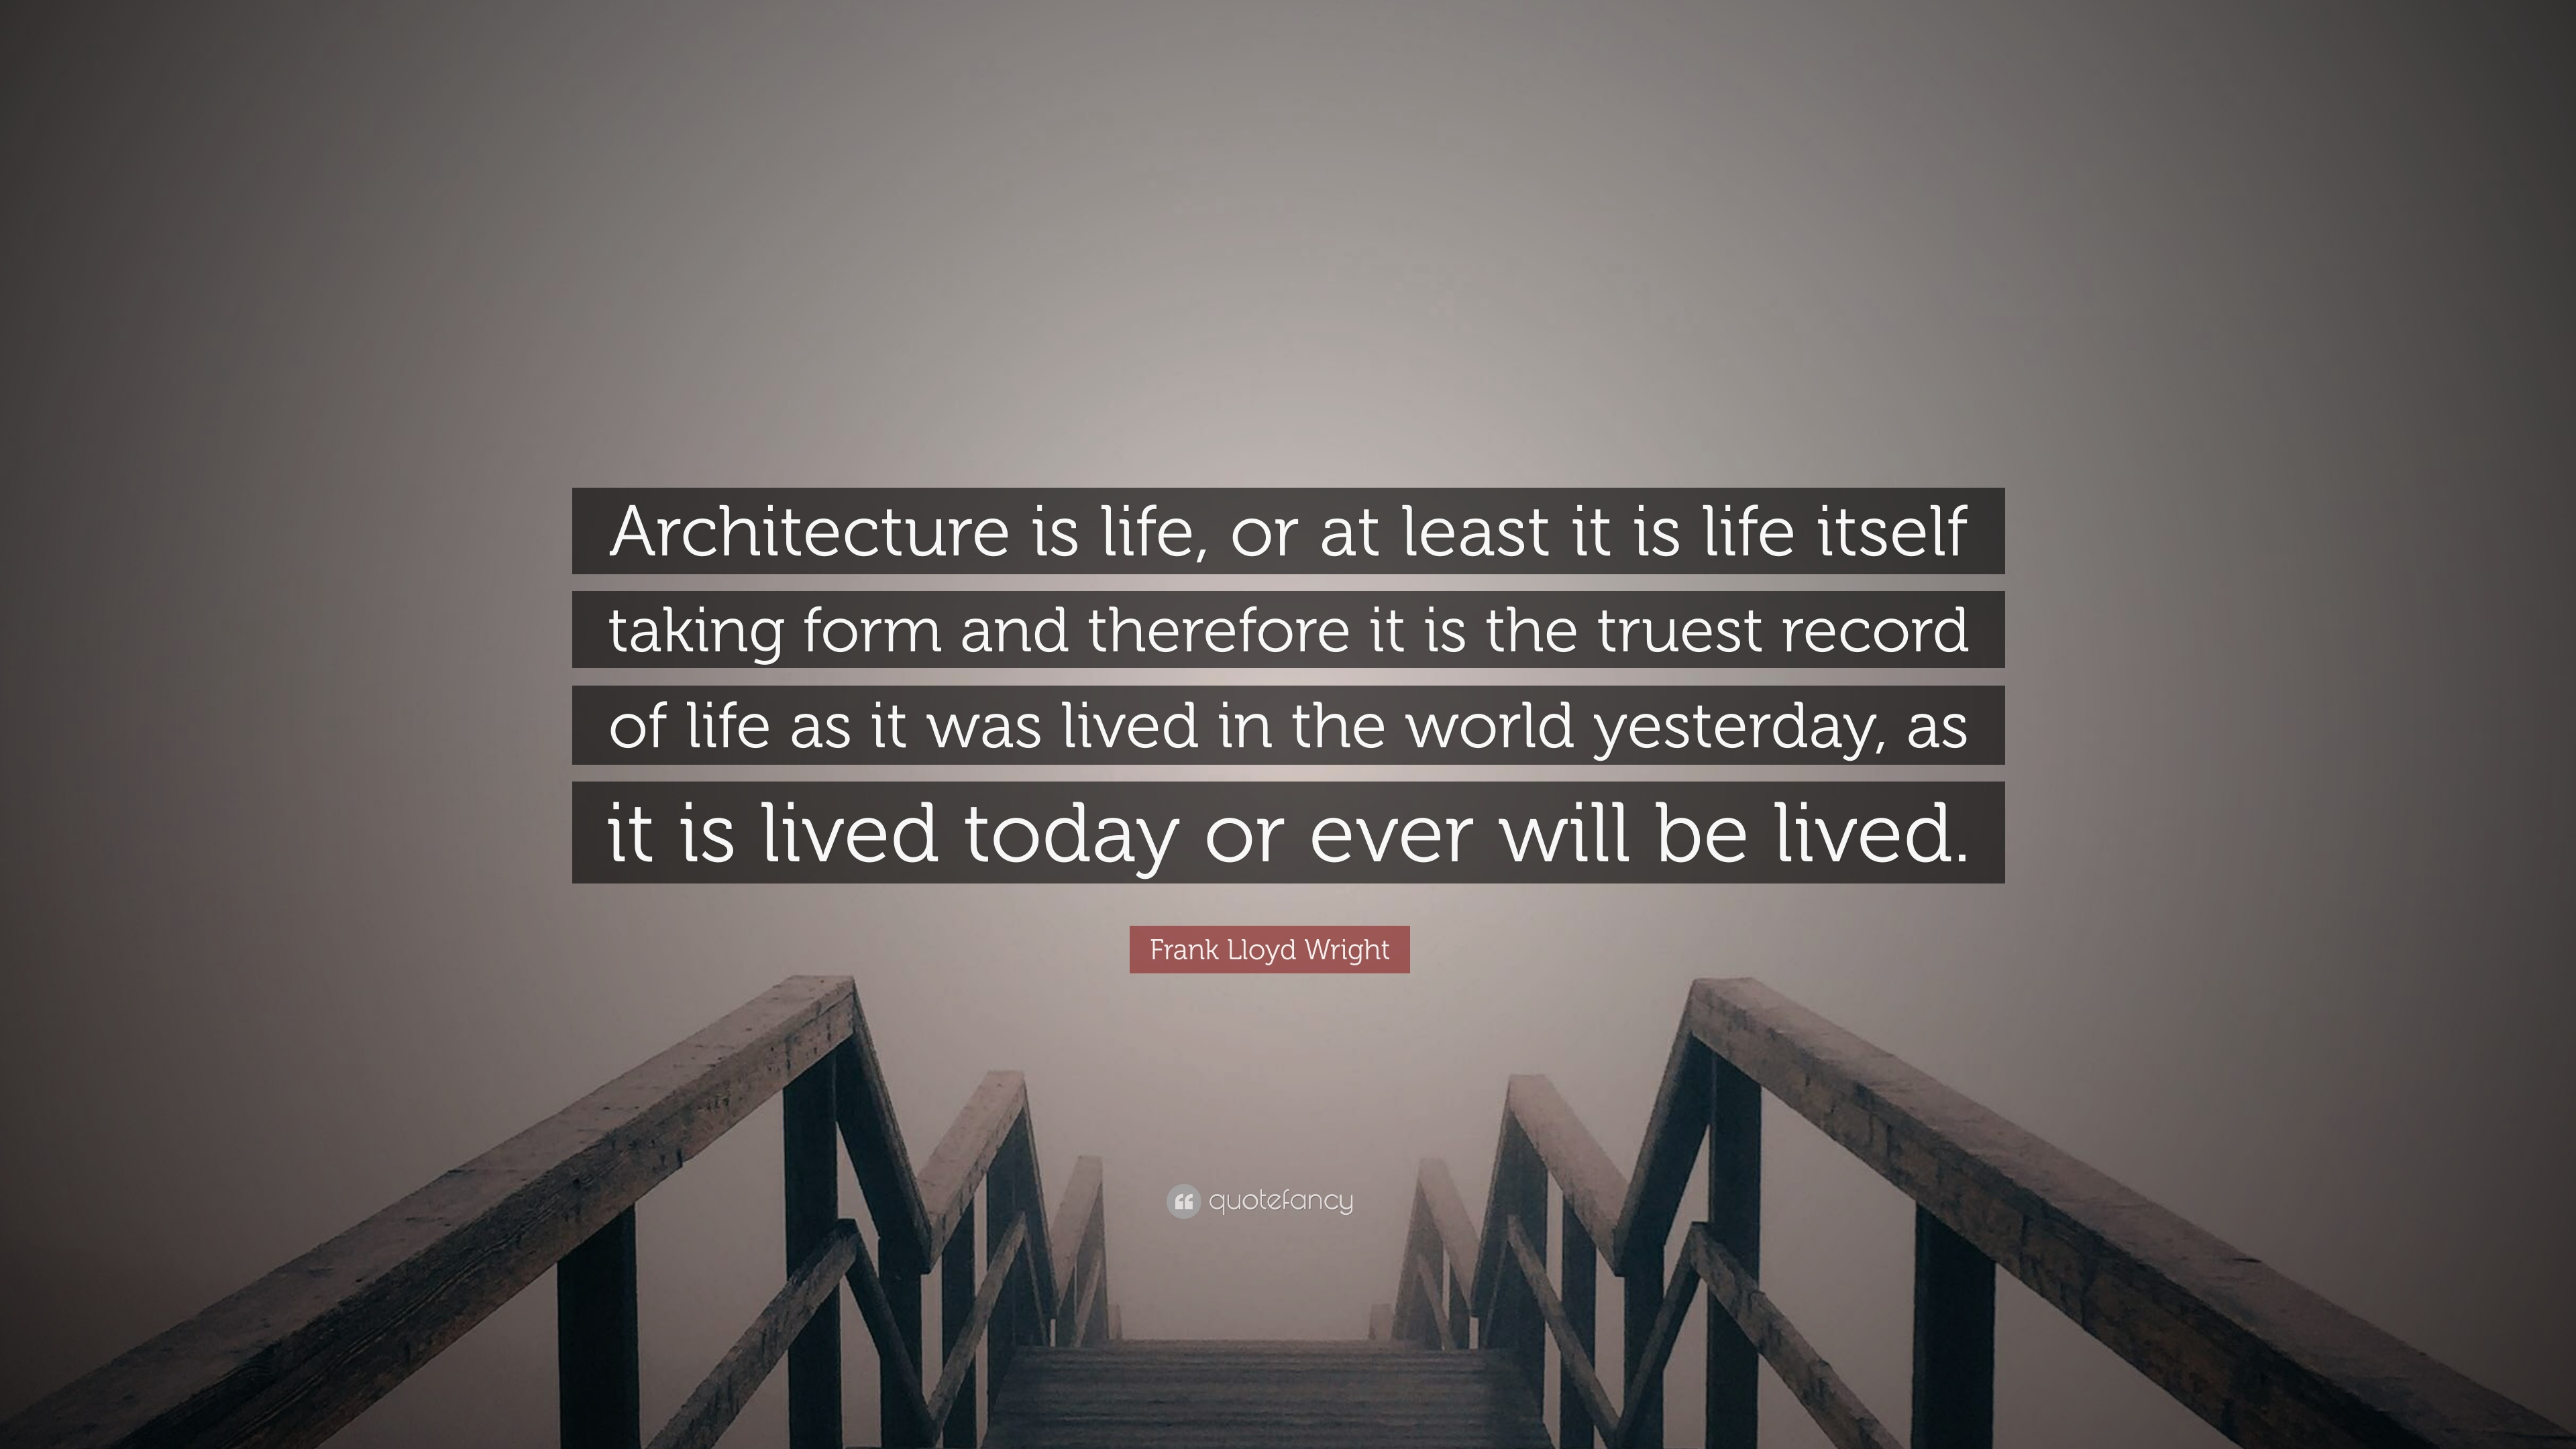 Frank Lloyd Wright Quotes | Frank Lloyd Wright Quote Architecture Is Life Or At Least It Is